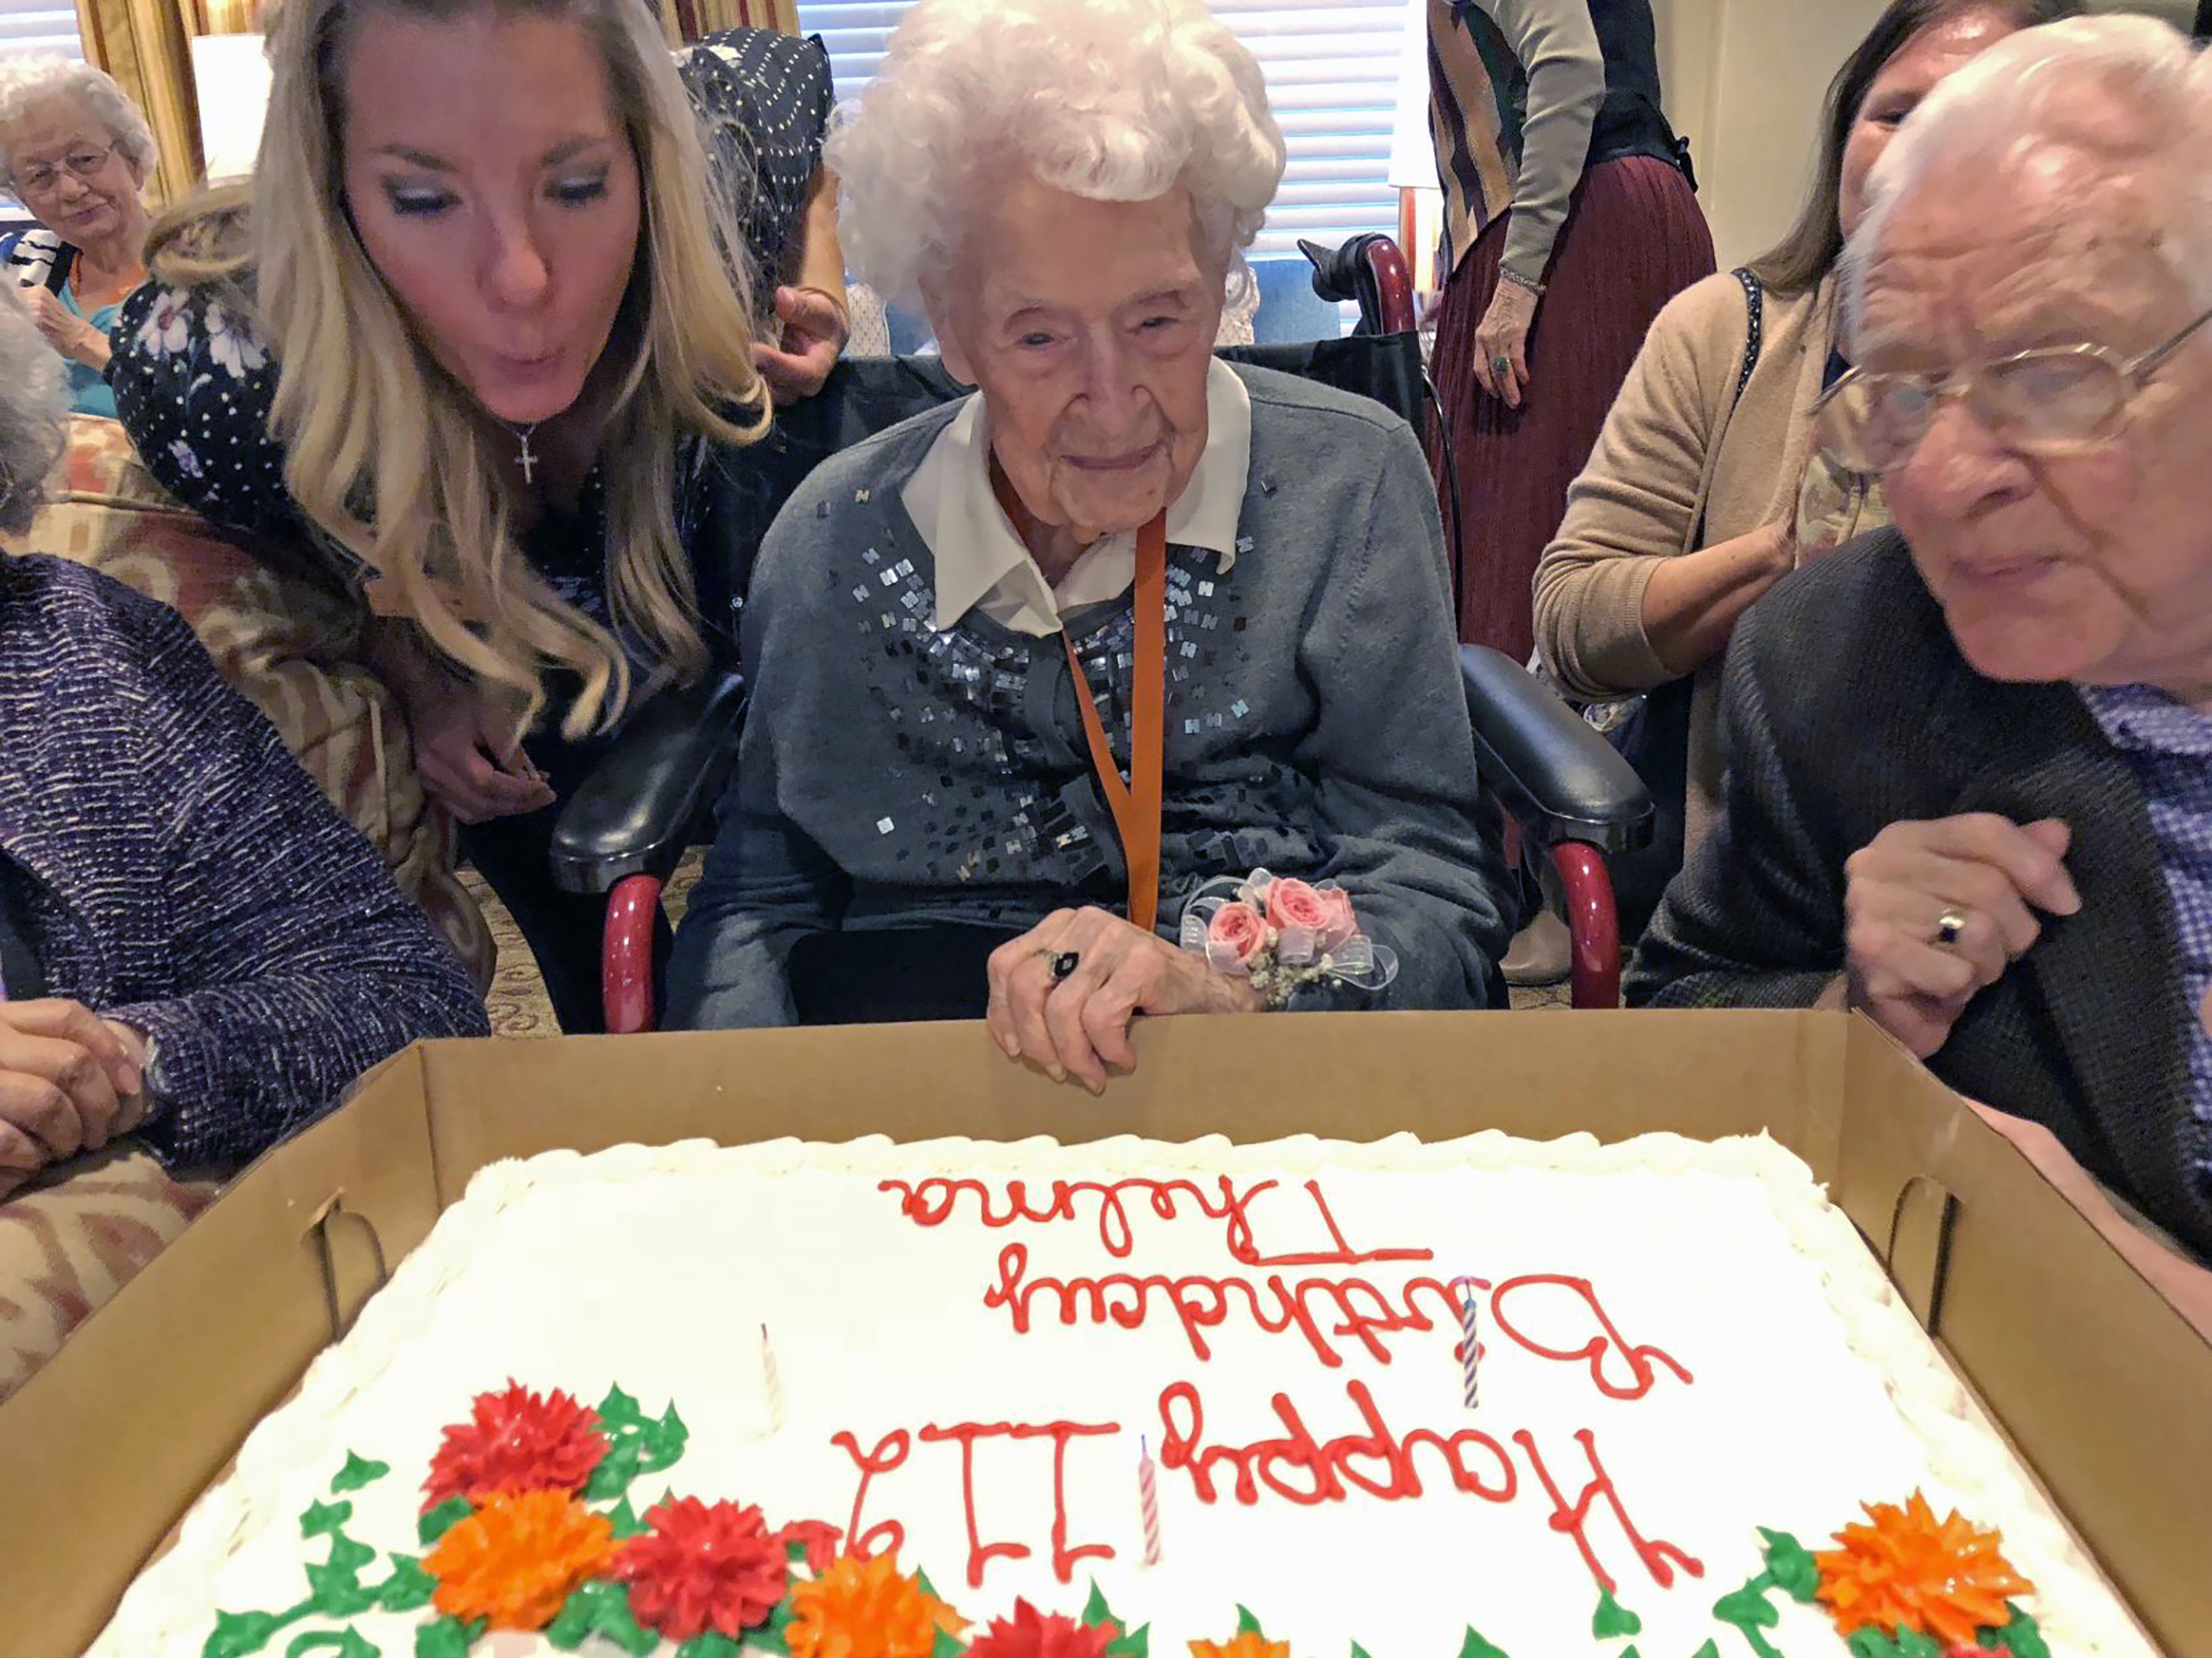 Thelma Sutcliffe is shown with a birthday cake in October 2019, in Omaha, Neb. Sutcliffe is now the oldest living American at 114 years old.